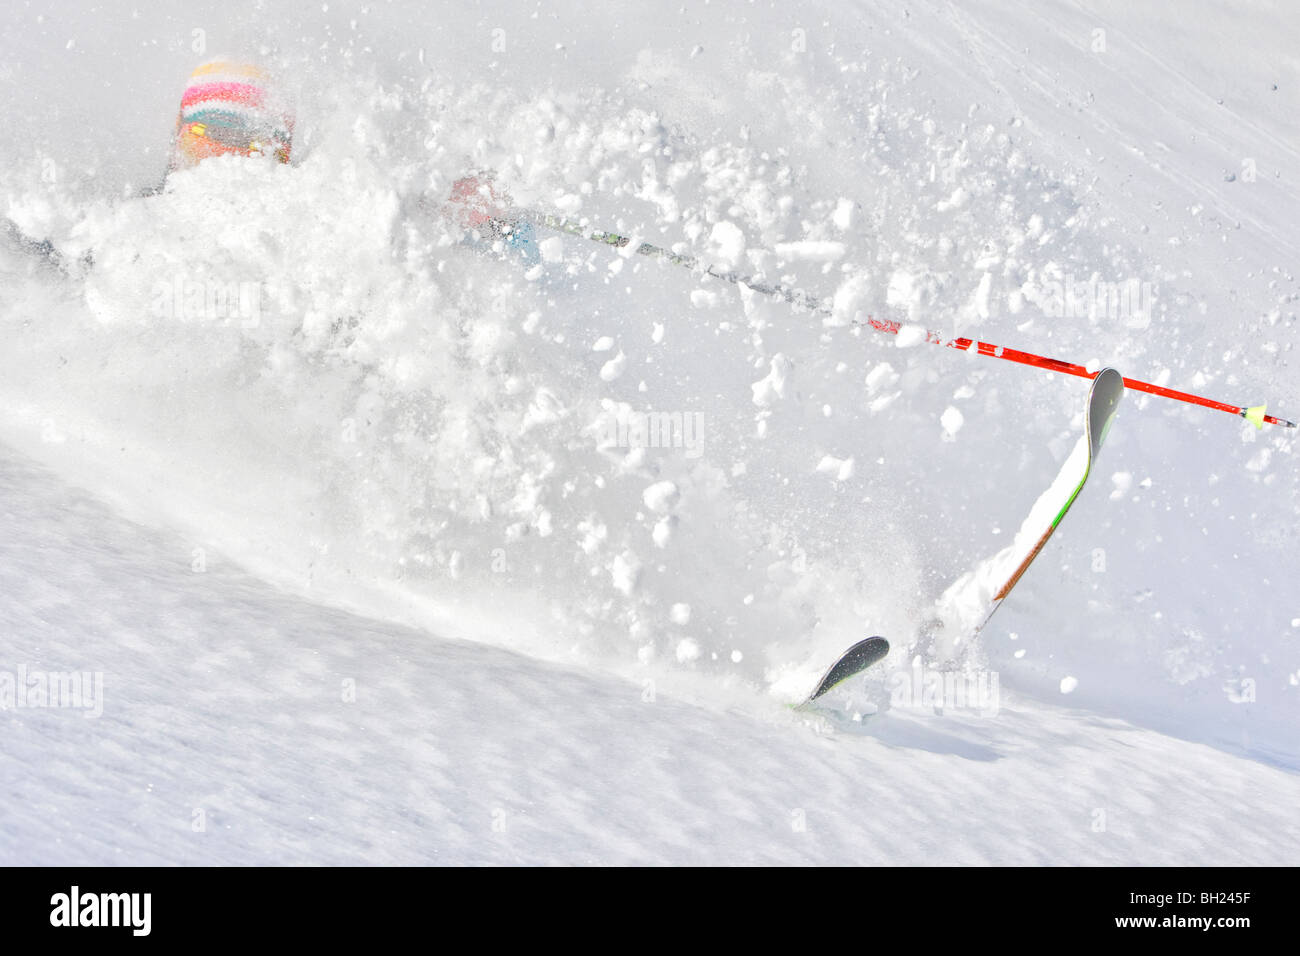 Male skier turning in deep powder snow, off piste Val d'Isere - Stock Image